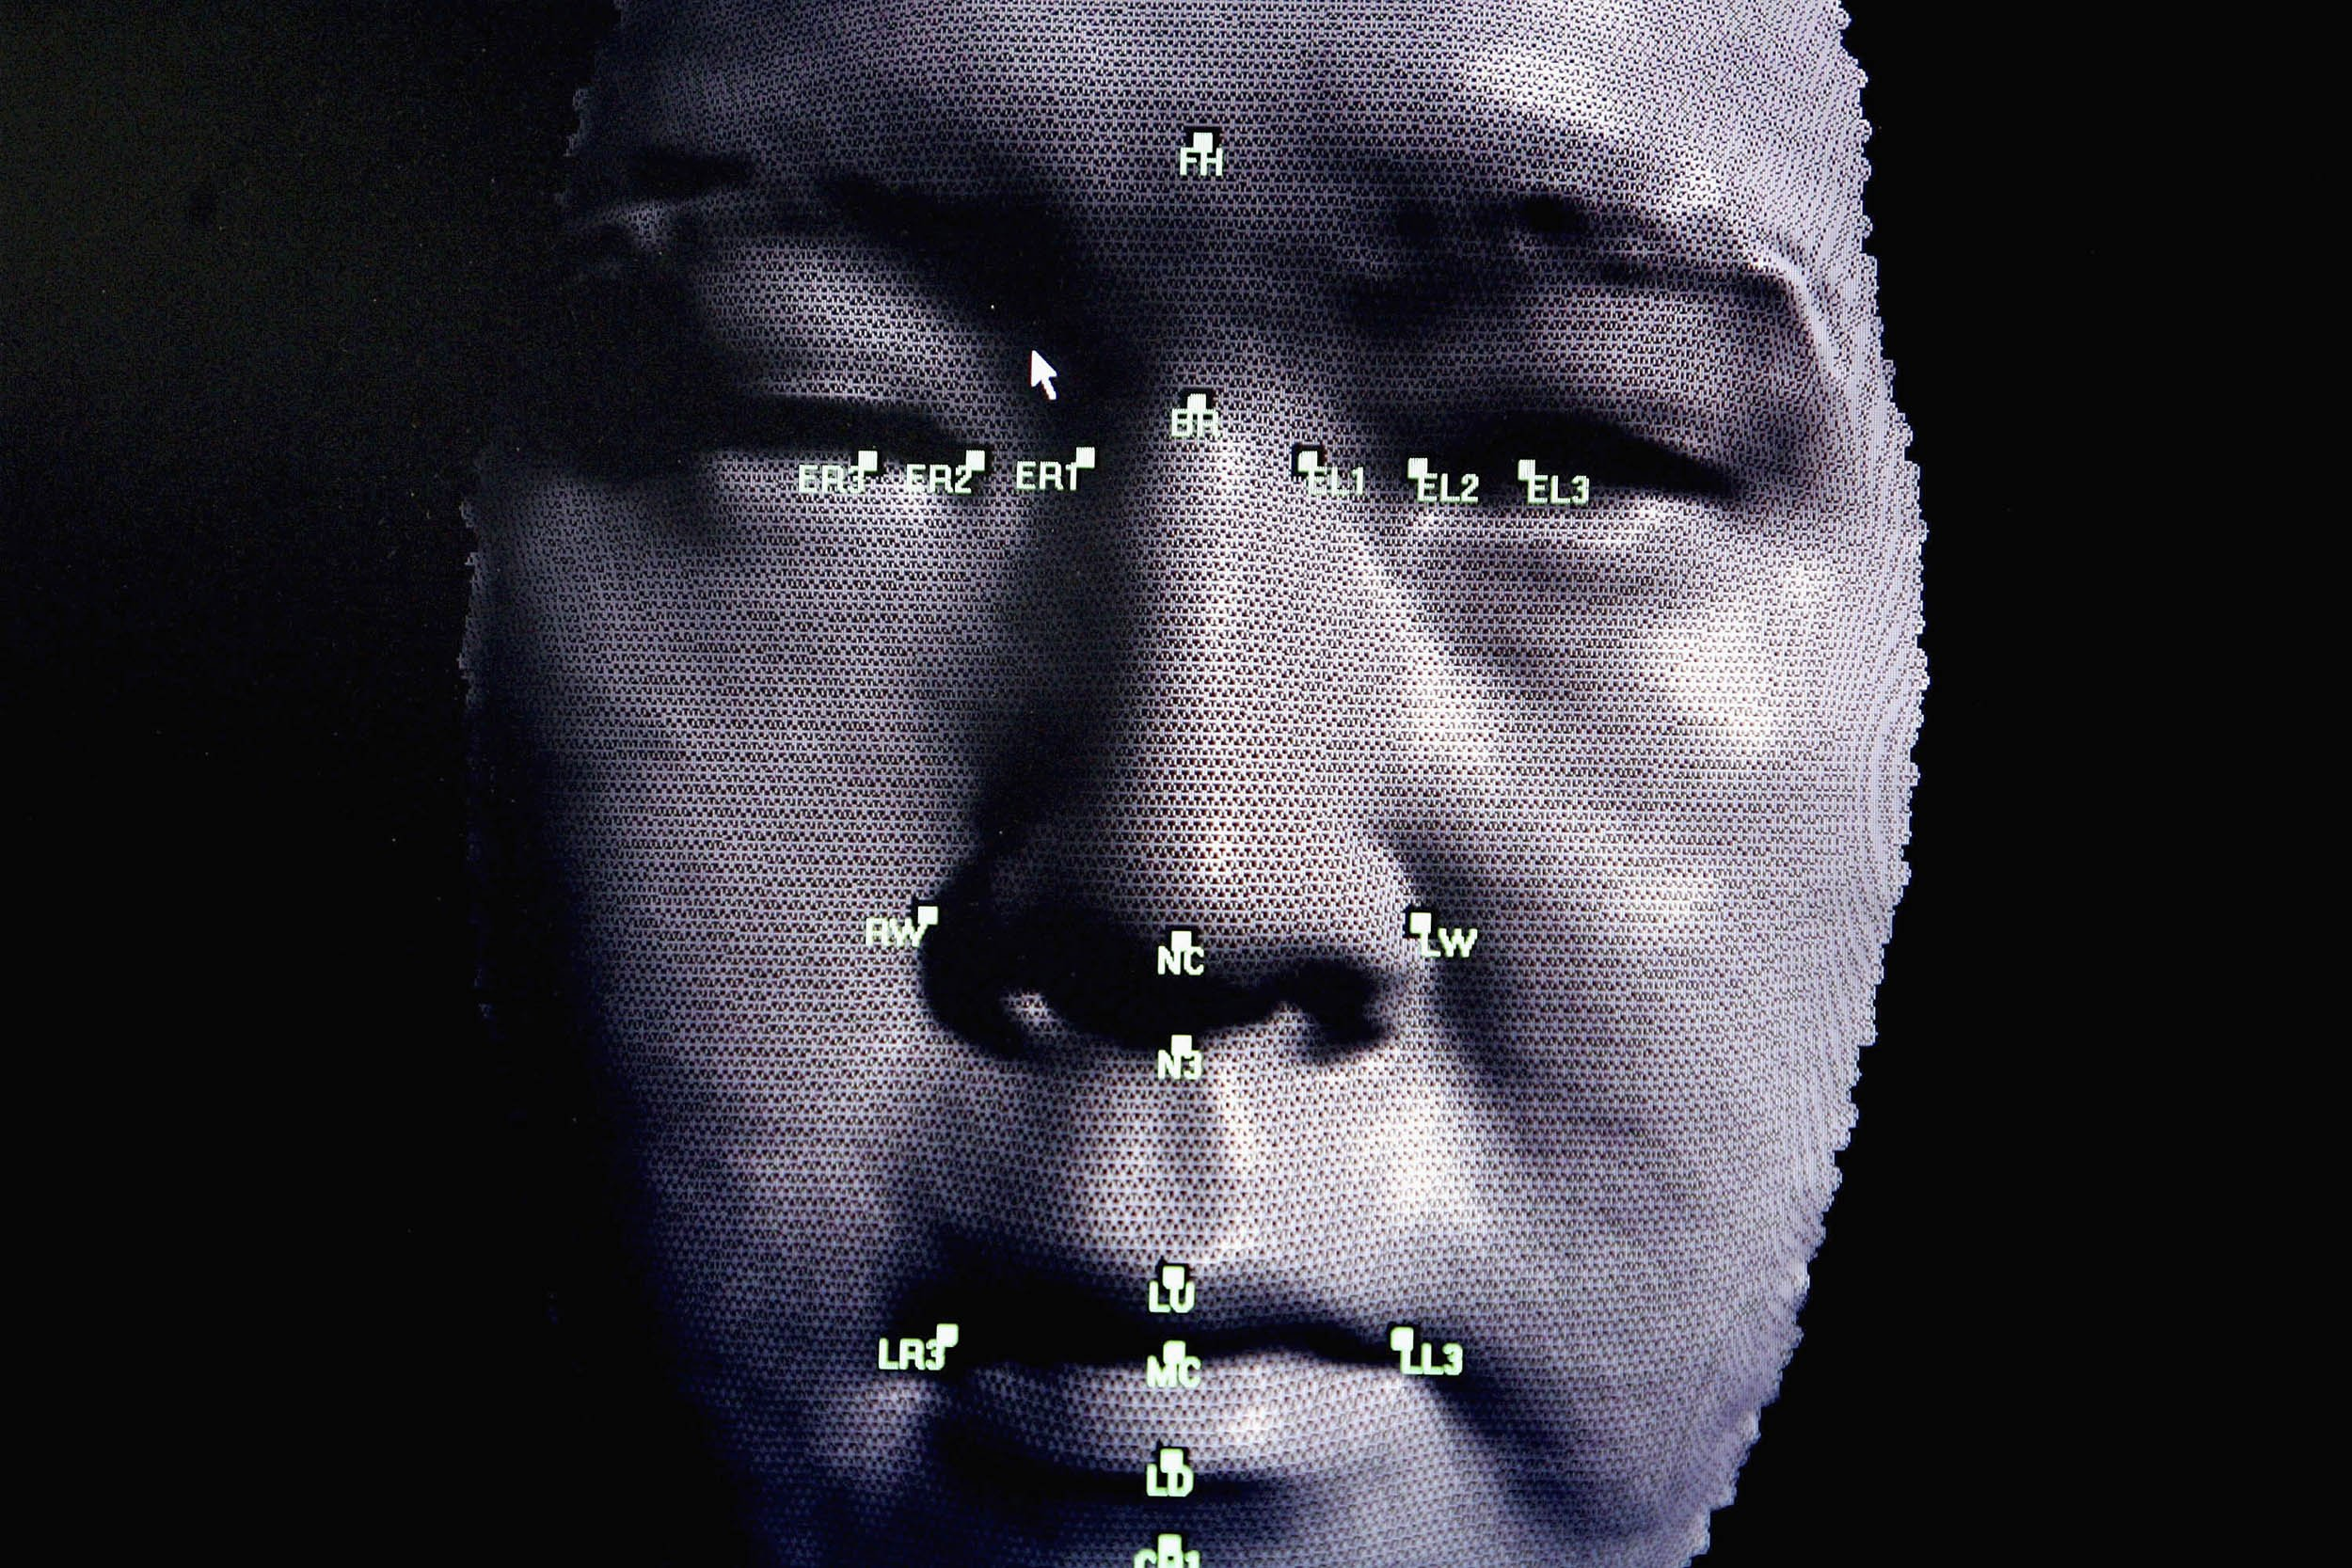 09_16_FacialRecognition